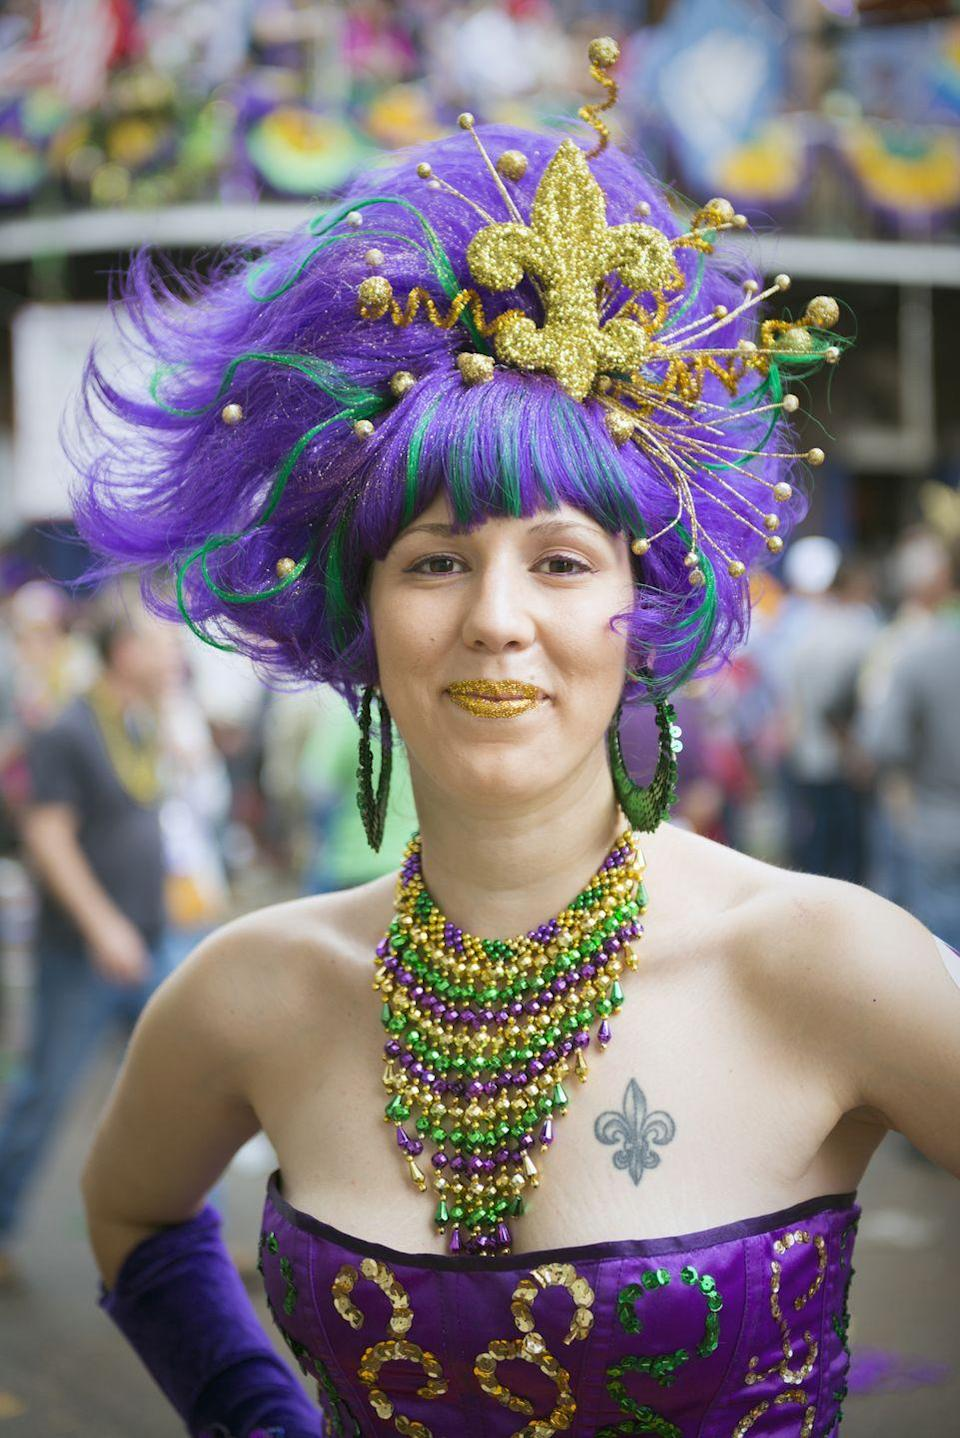 """<p>You'll see the French Quarter festooned with these official colors of Mardi Gras every year. Originally the hues of the Krewe of Rex (aka <a href=""""https://www.rexorganization.com/Tradition"""" rel=""""nofollow noopener"""" target=""""_blank"""" data-ylk=""""slk:the Rex Organization"""" class=""""link rapid-noclick-resp"""">the Rex Organization</a>, aka the School of Design), a New Orleans krewe founded in 1872, they've since become the palette of Carnival citywide. Each color is recognized to have <a href=""""https://www.mardigrasneworleans.com/history/traditions/colors"""" rel=""""nofollow noopener"""" target=""""_blank"""" data-ylk=""""slk:its own meaning"""" class=""""link rapid-noclick-resp"""">its own meaning</a>: Purple for justice, green for faith, and gold for power.</p>"""